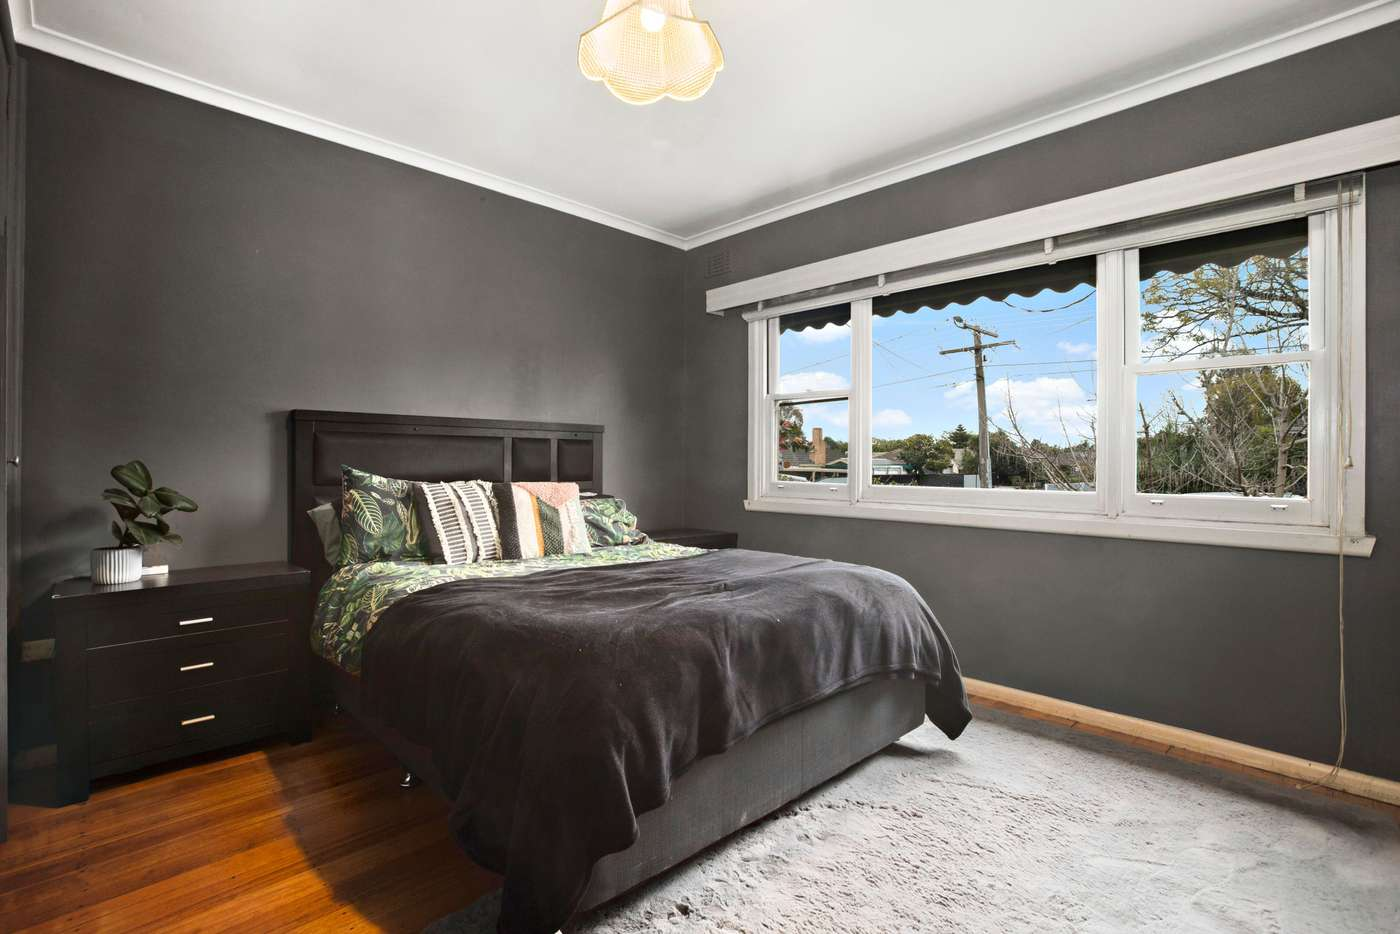 Fifth view of Homely house listing, 28 Elora Road, Oakleigh South VIC 3167